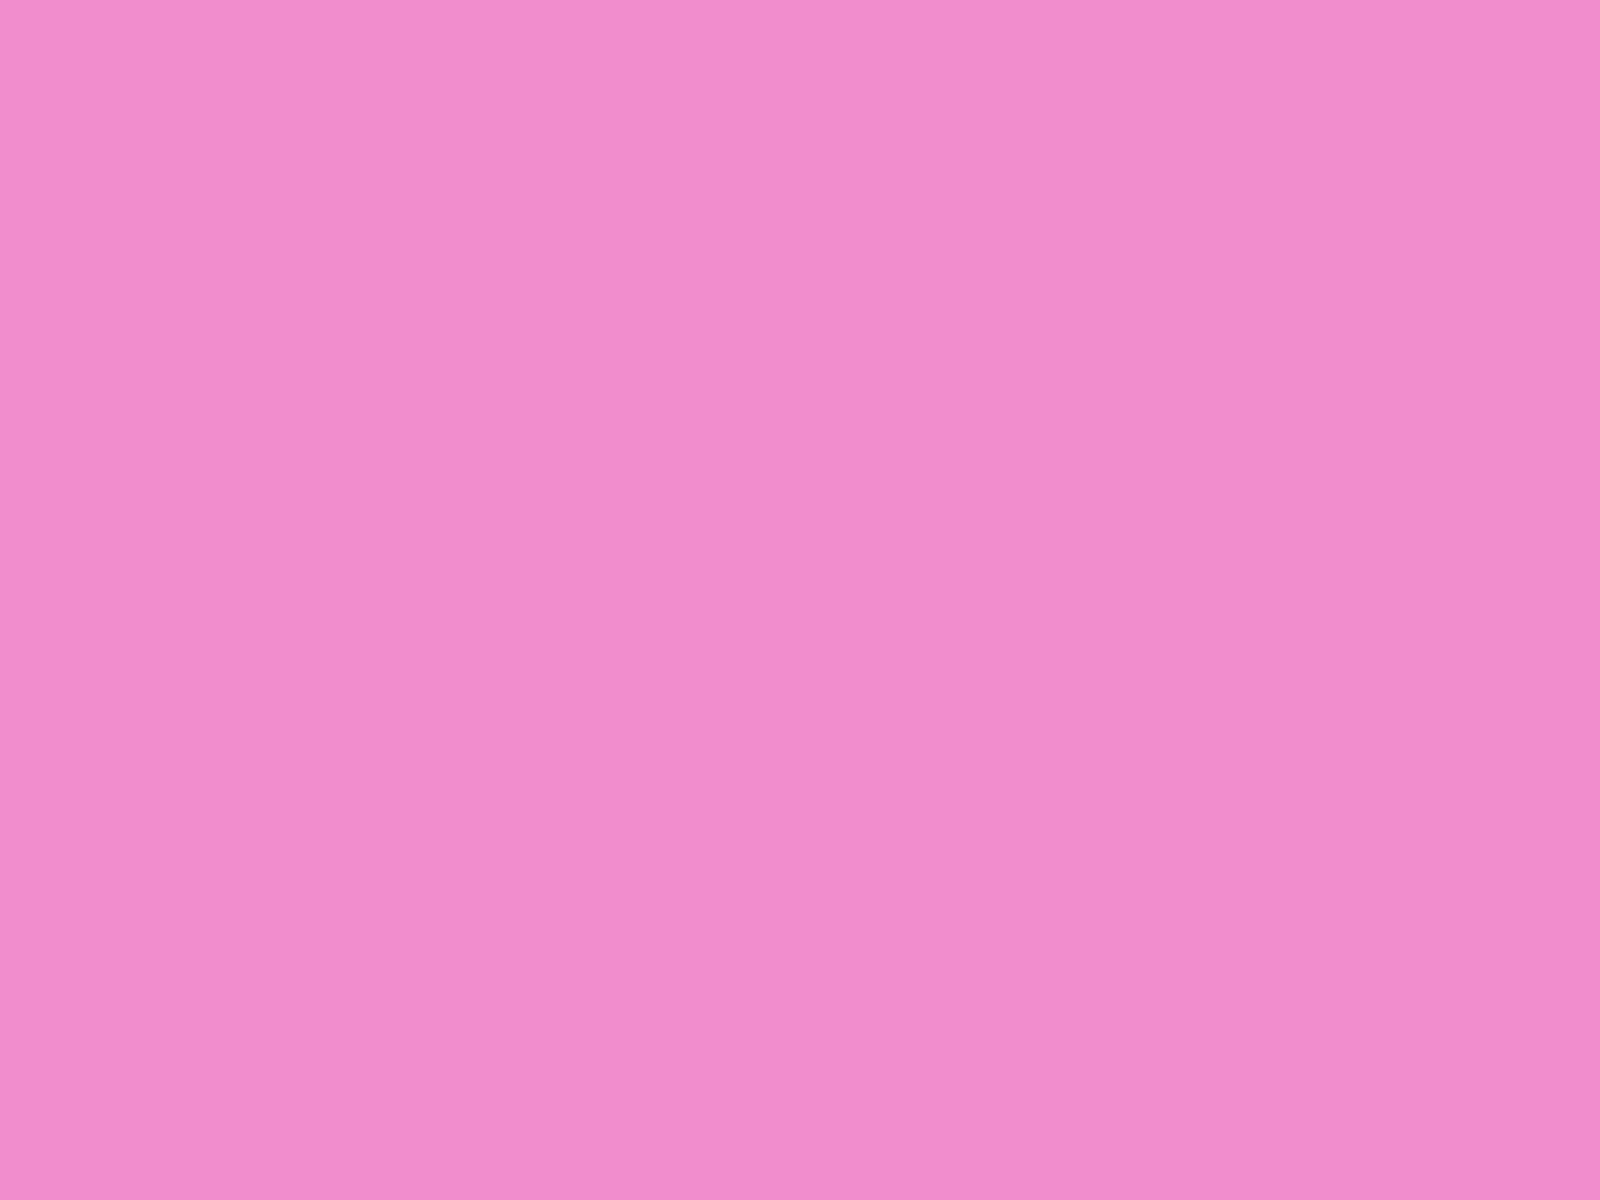 1600x1200 Orchid Pink Solid Color Background